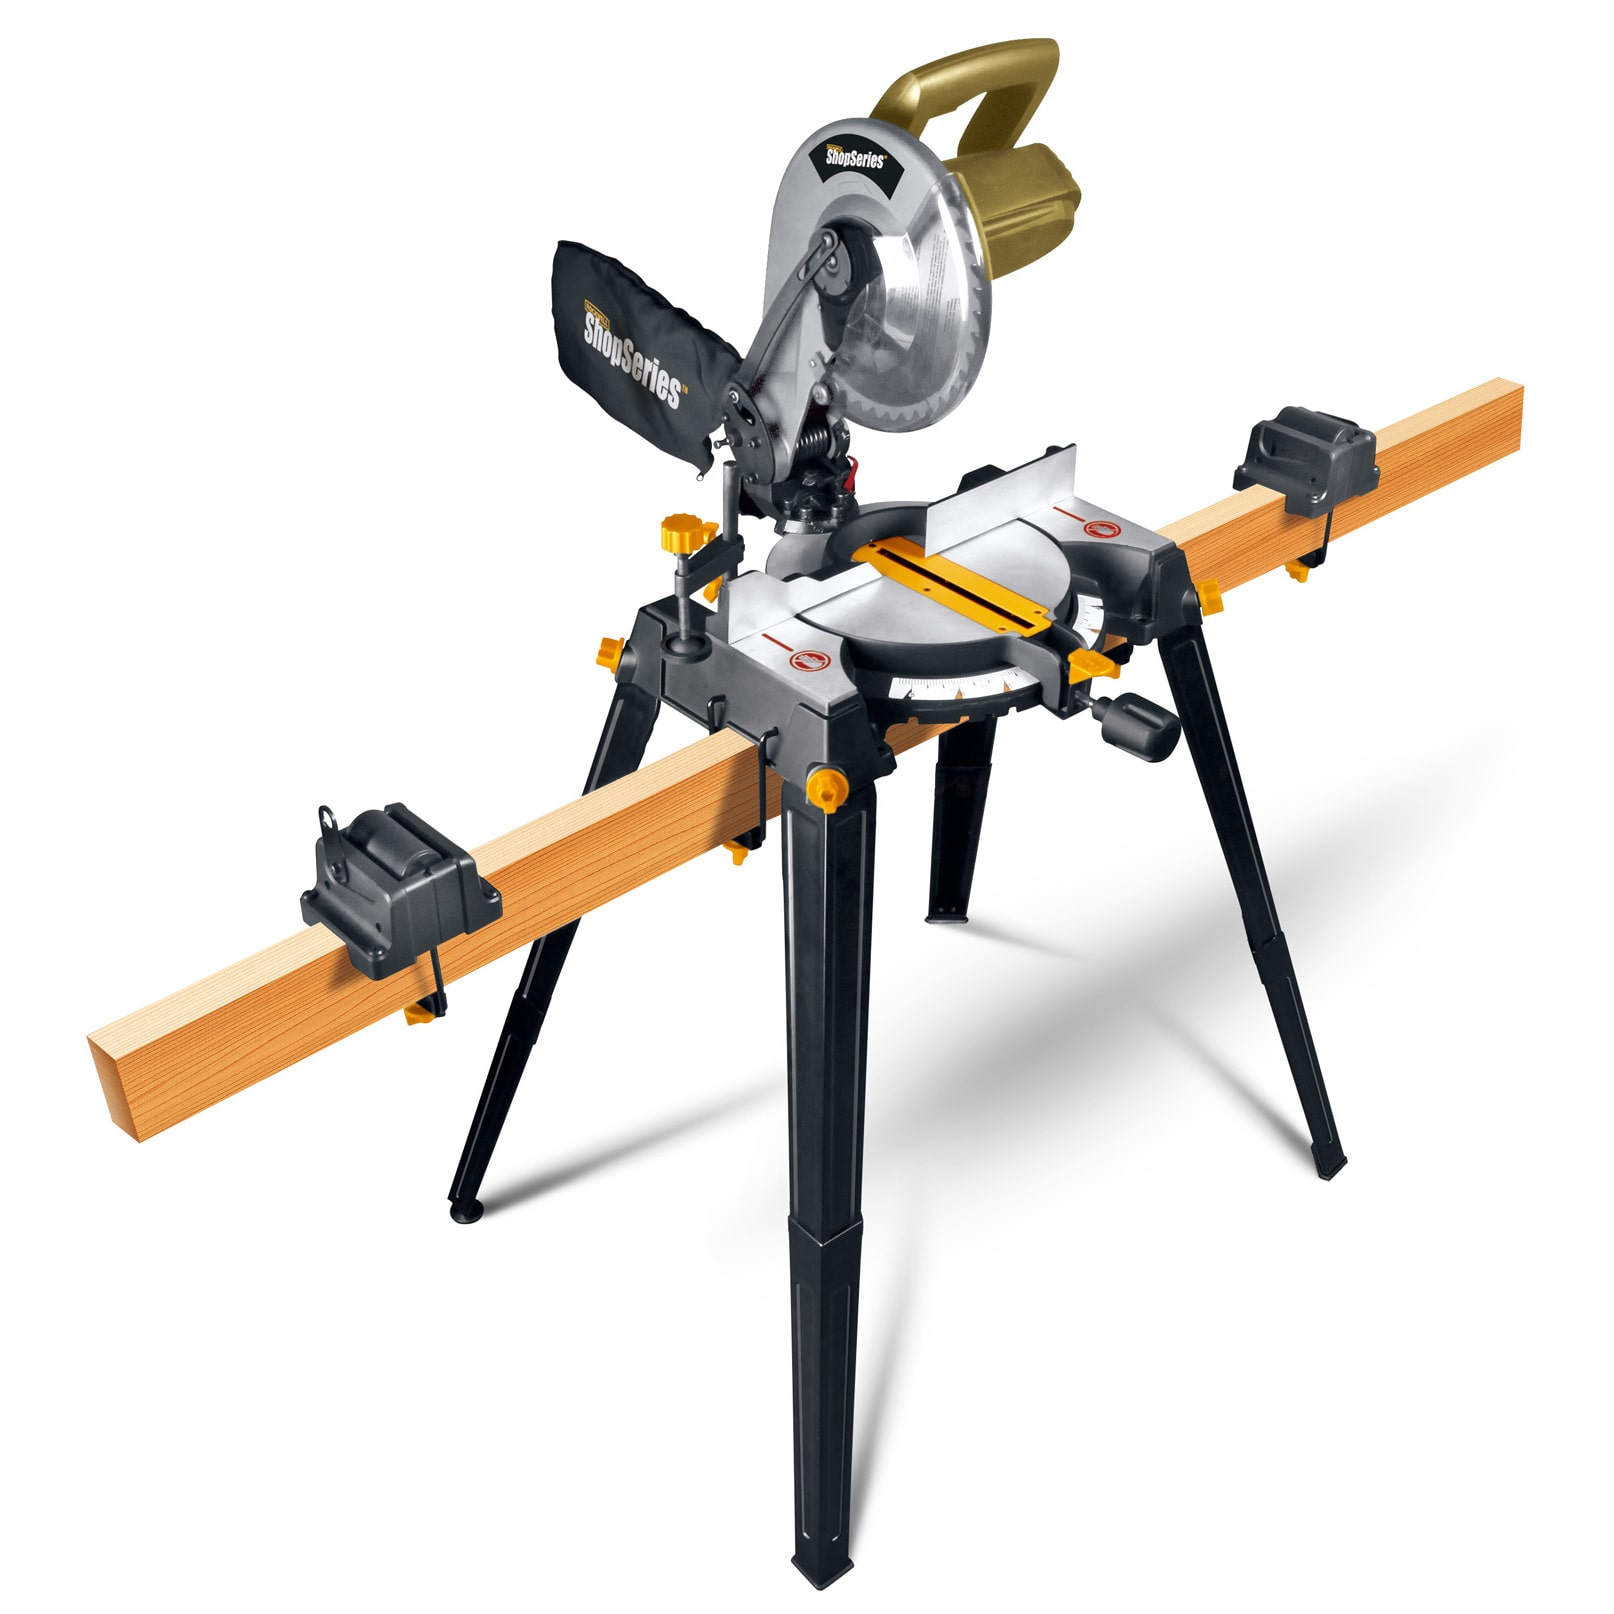 Rockwell Shop RK7136.1 Compound Corded Miter Saw with Leg Stands, 120 VAC, 14 A, 5200 rpm by Overstock